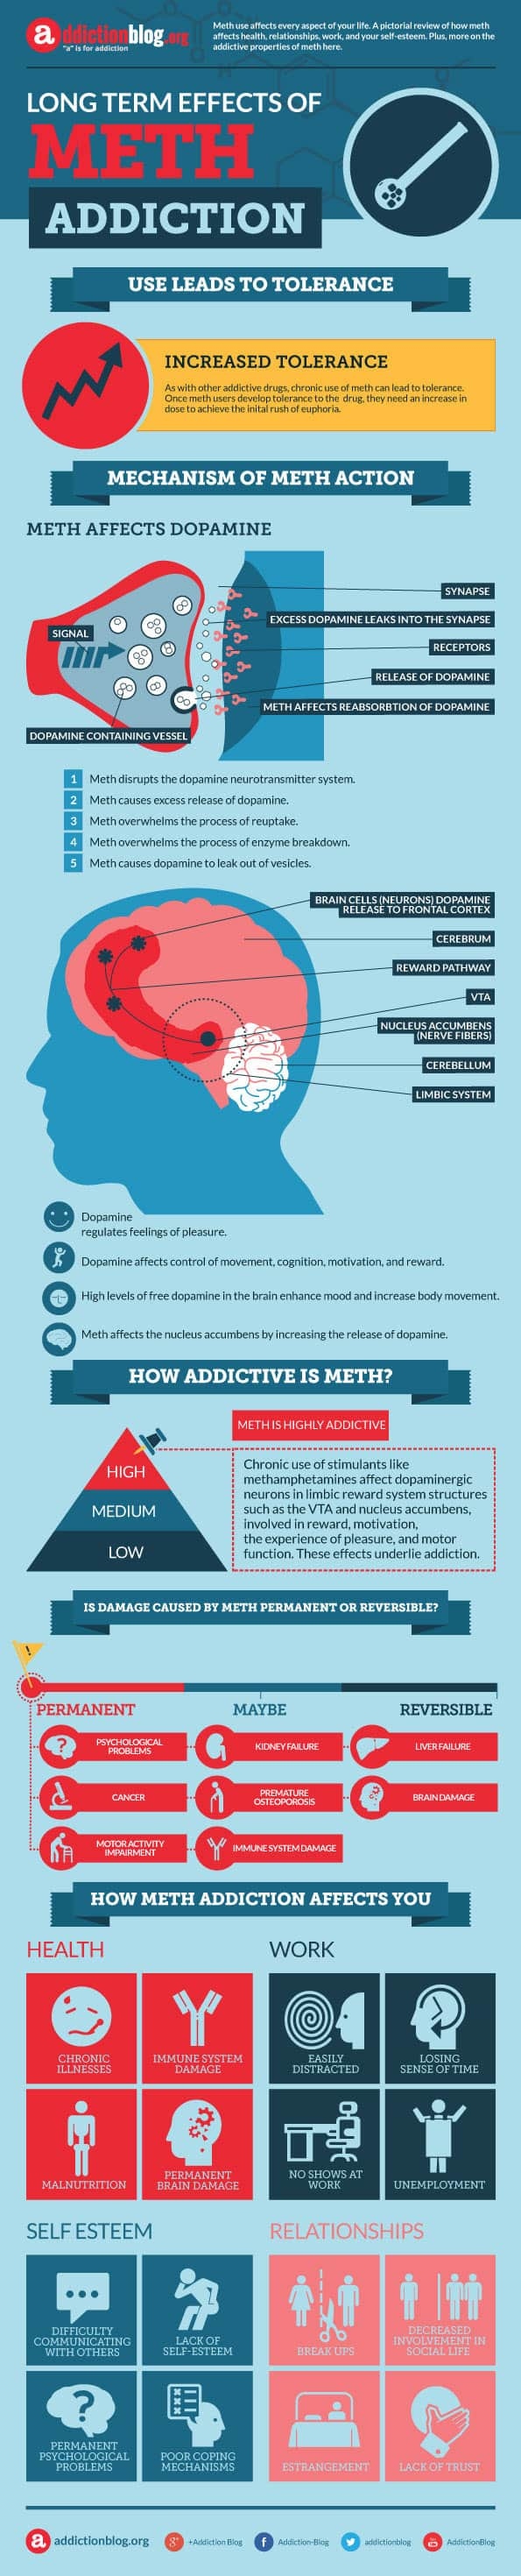 Long-Term-Effects-of-Meth-Addicton